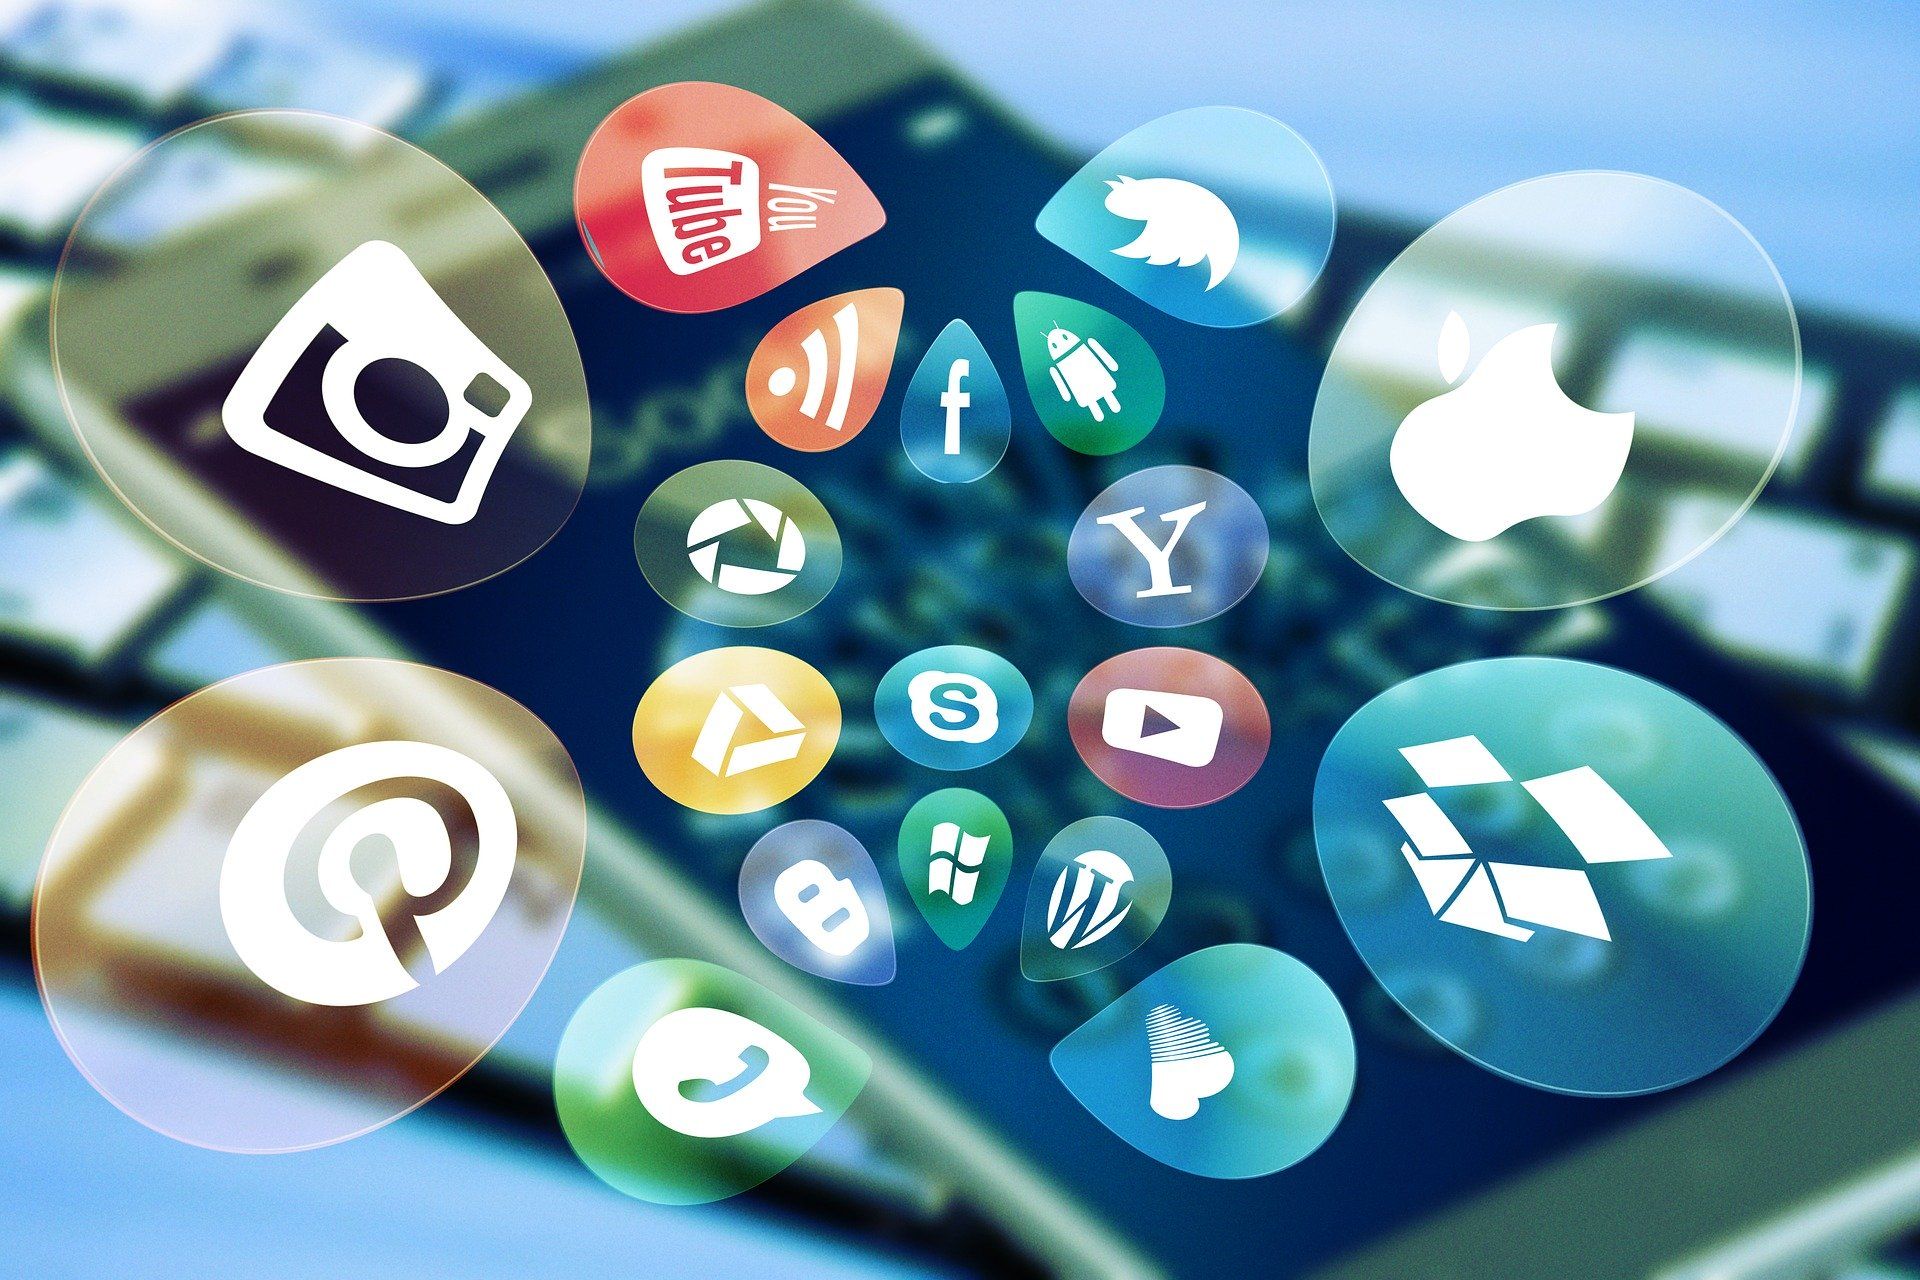 INTELLECTUAL PROPERTY & MOBILE APPLICATIONS